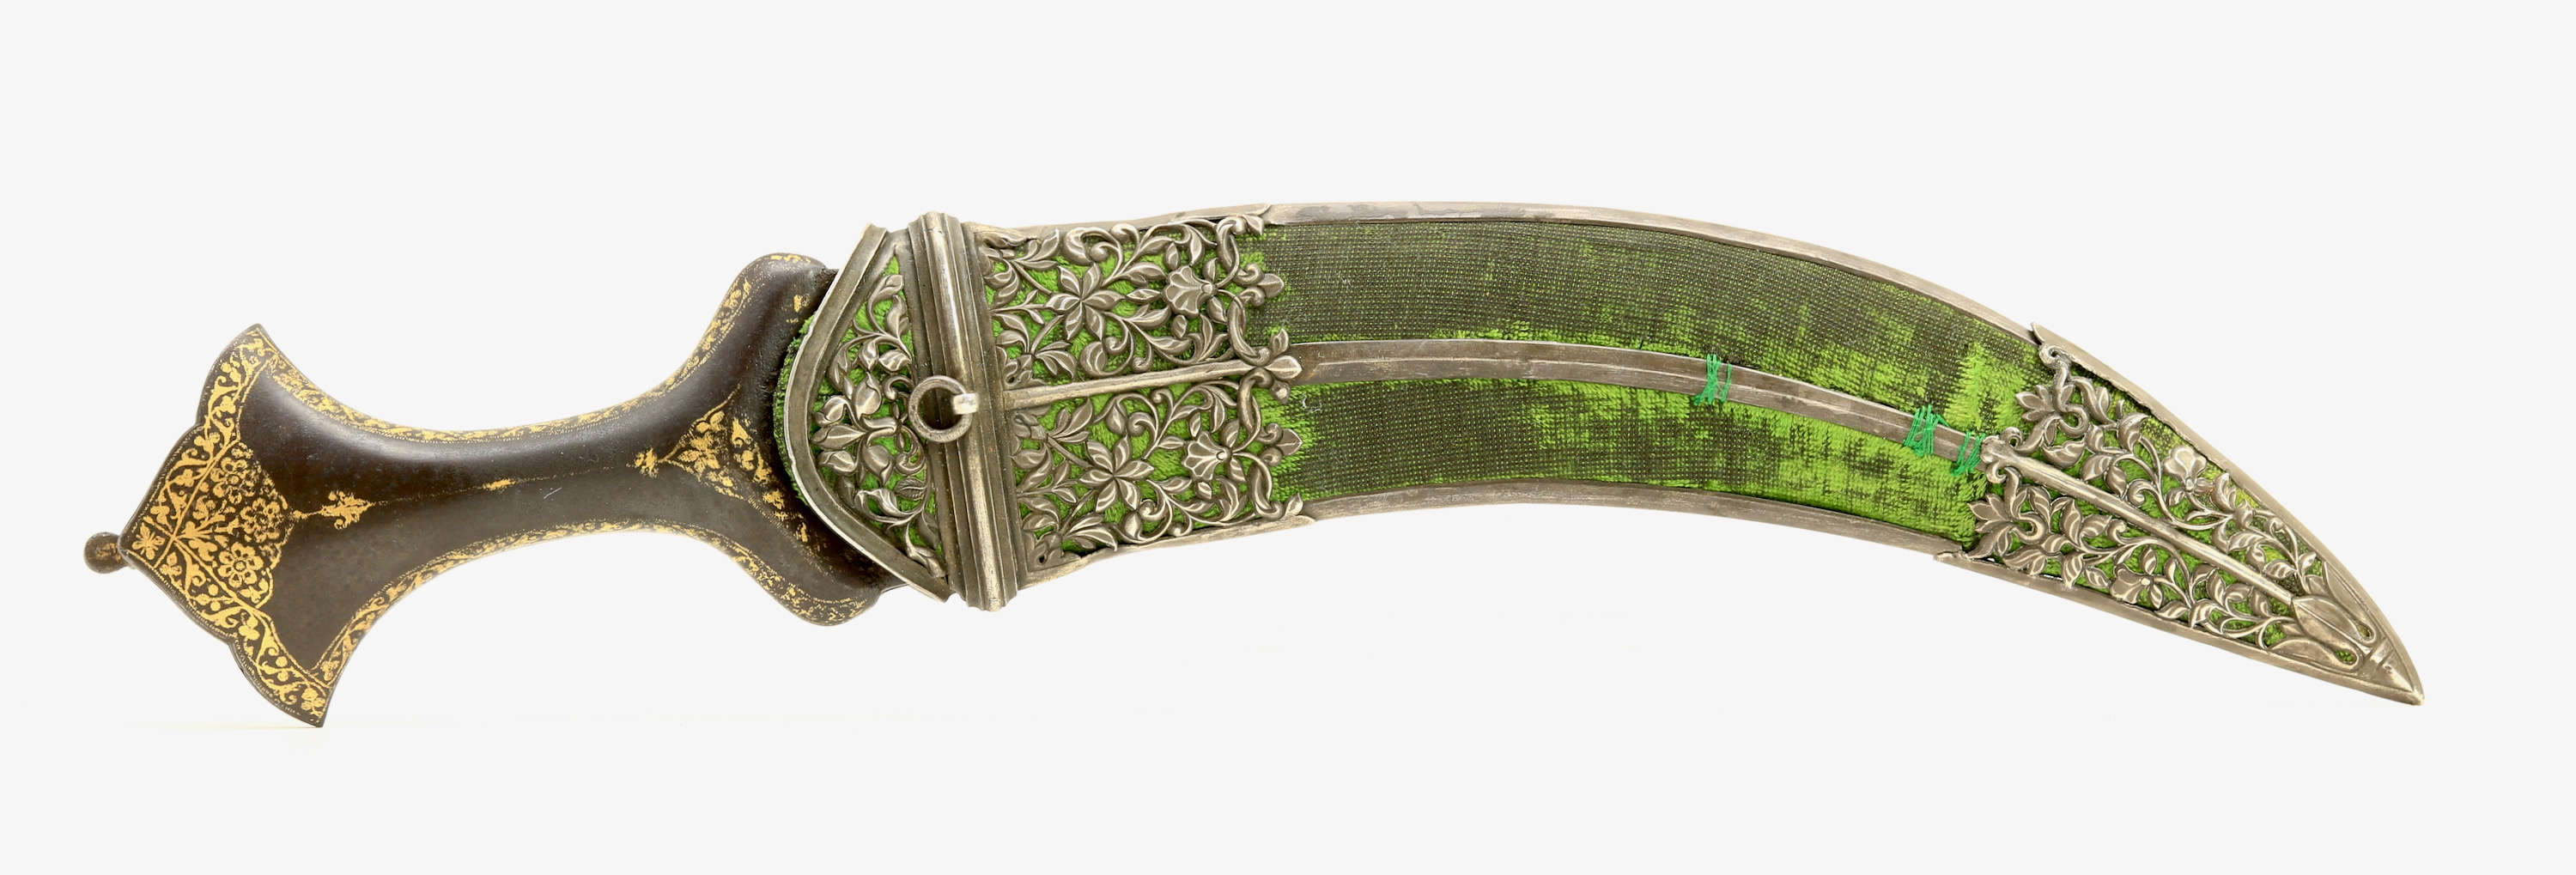 Rare antique Indian dagger